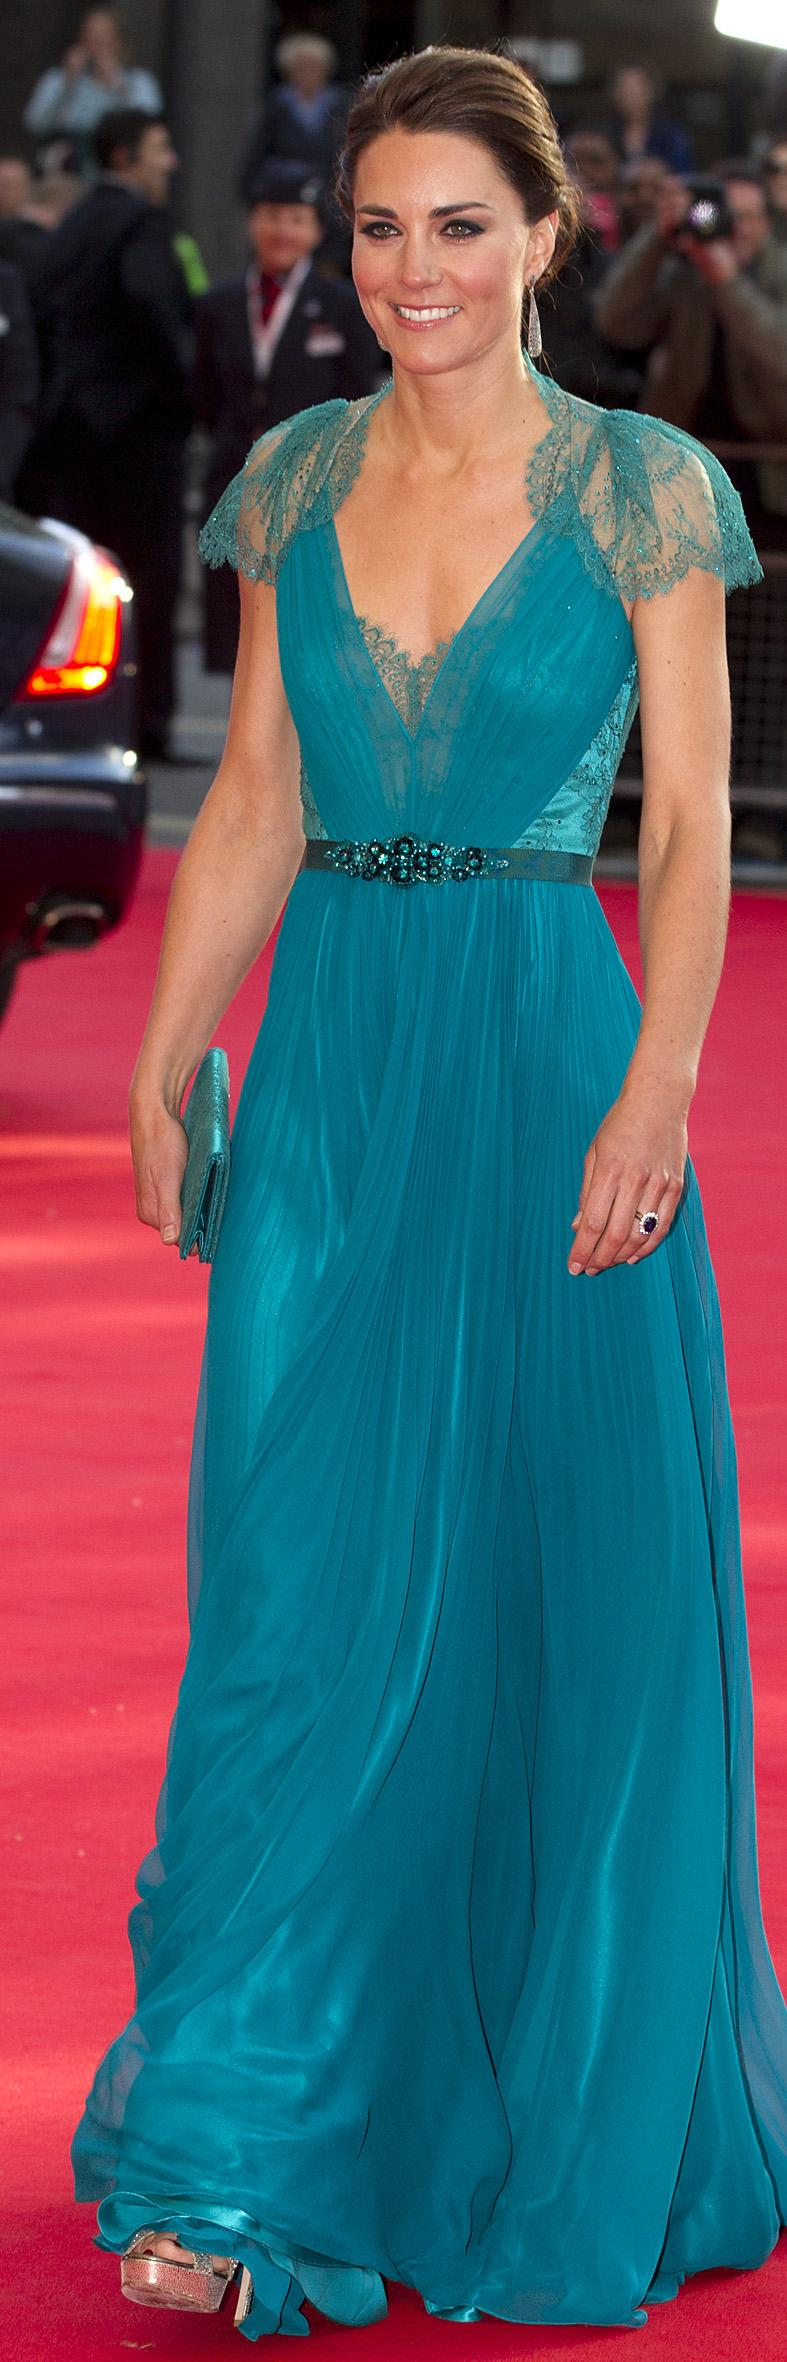 2012 Wrap Up: Best of the Red Carpet | Duchess kate, Kate middleton ...